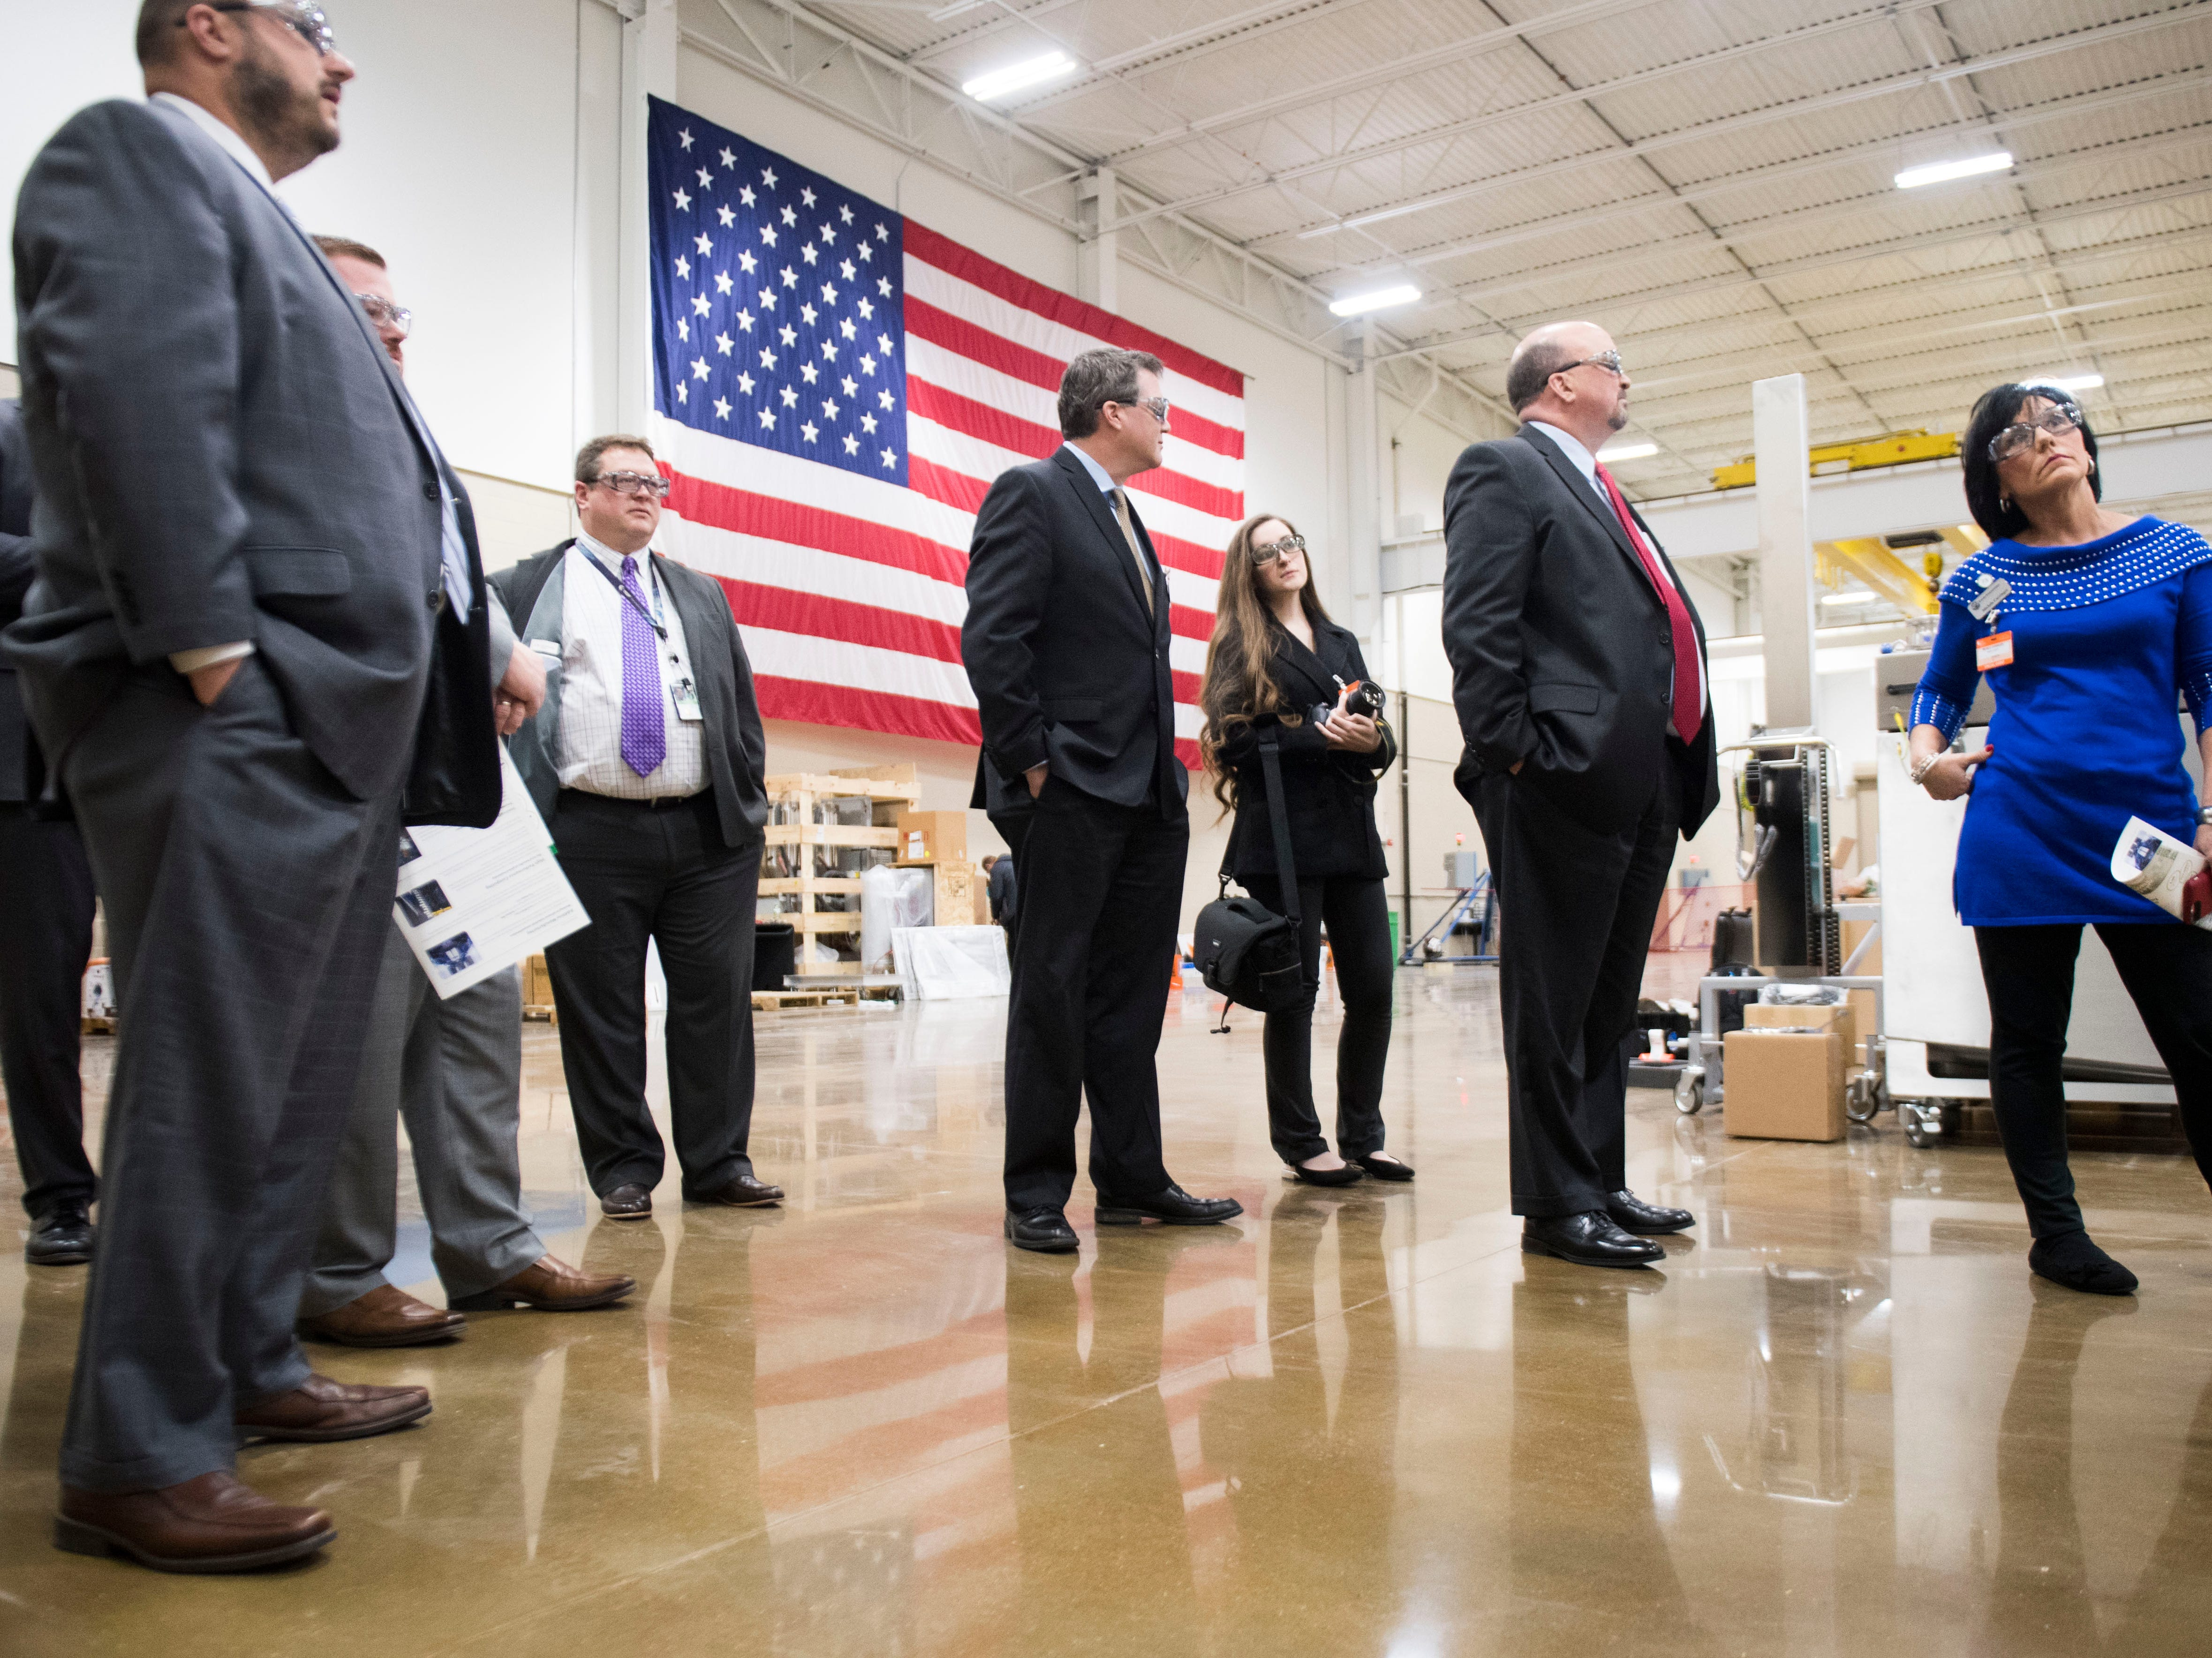 The Knox County Commision and Knoxville Chamber officials tour Oak Ridge National Laboratory's Manufacturing Demonstration Facility in Knoxville Tuesday, Dec. 4, 2018. The group got a sense of what is available for the region in terms of advanced manufacturing, and potential workforce initiatives.